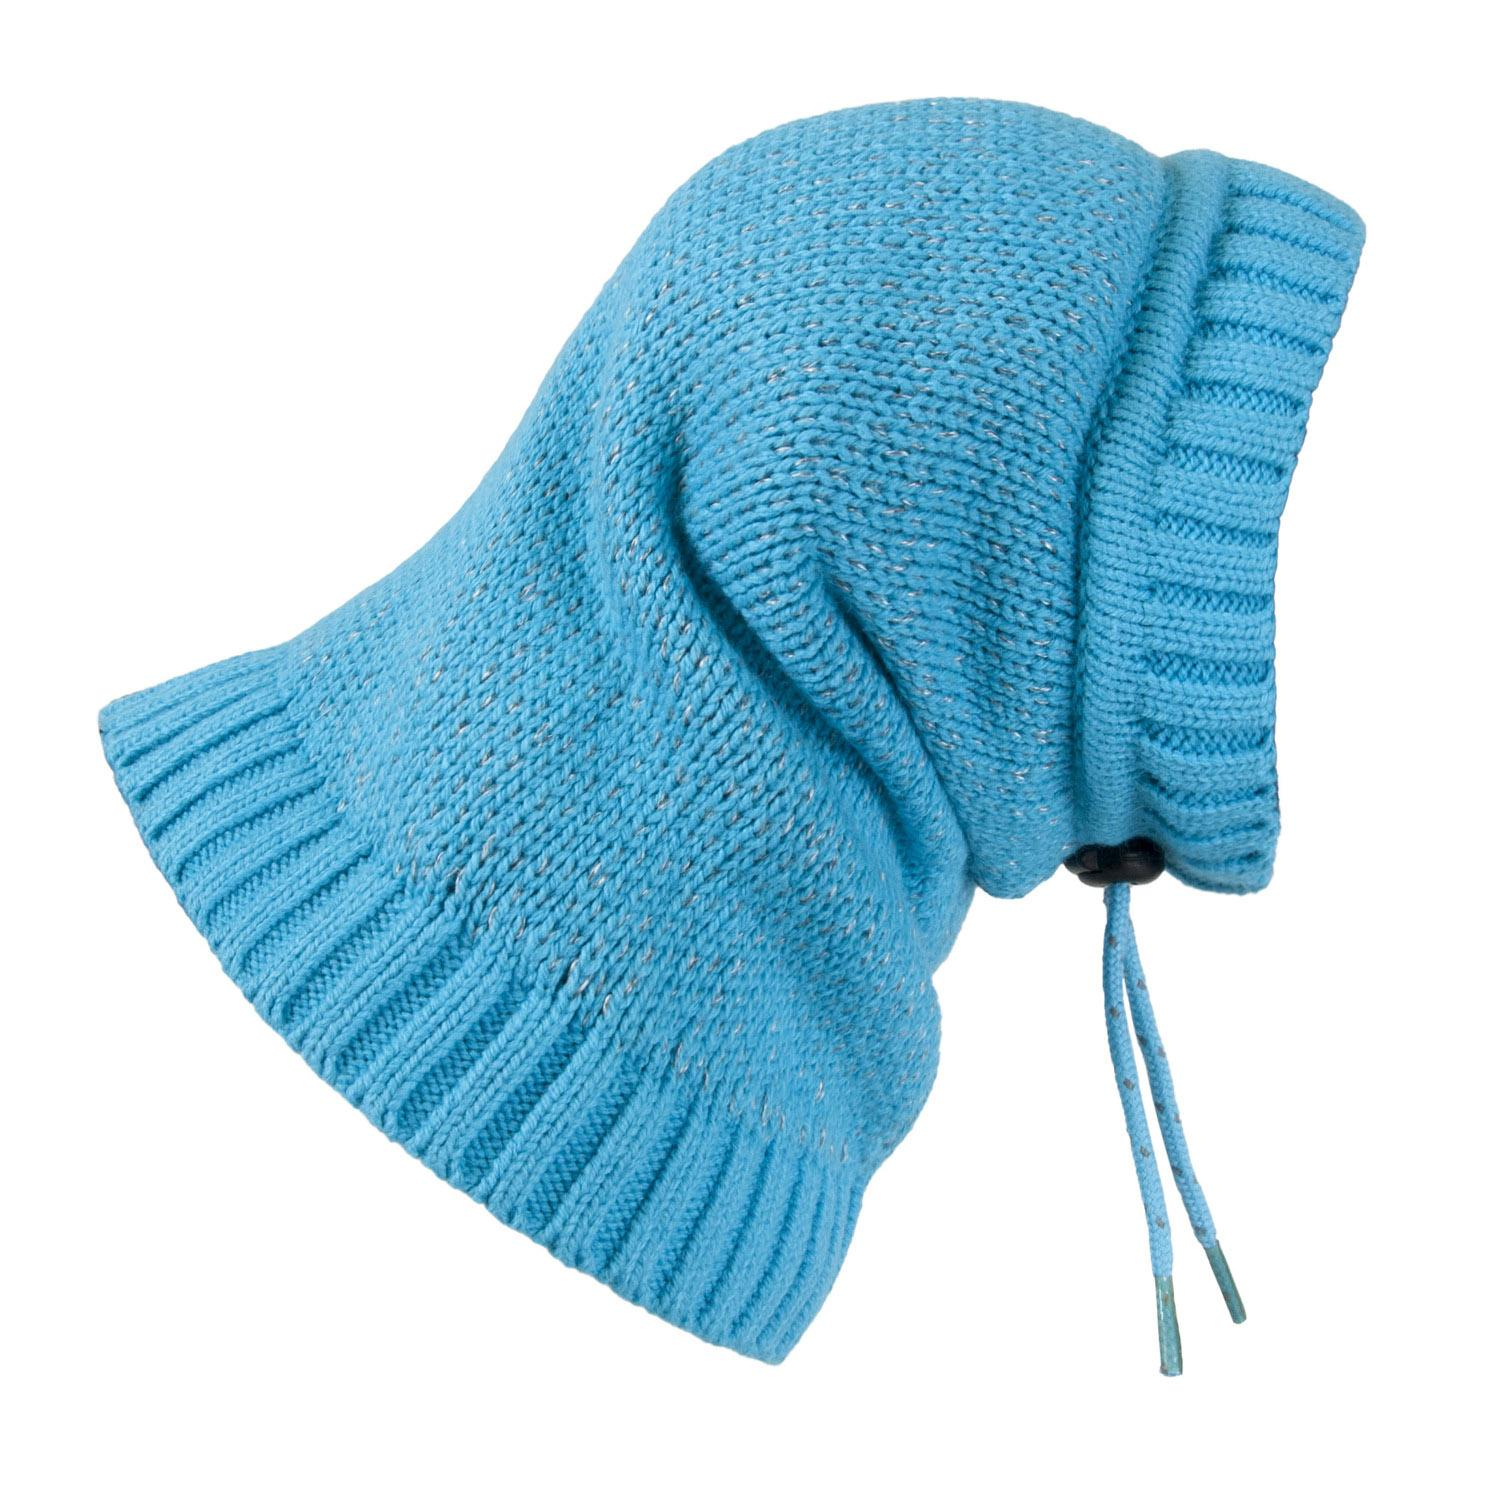 Polaris Reflective Dog Snood  - Teal